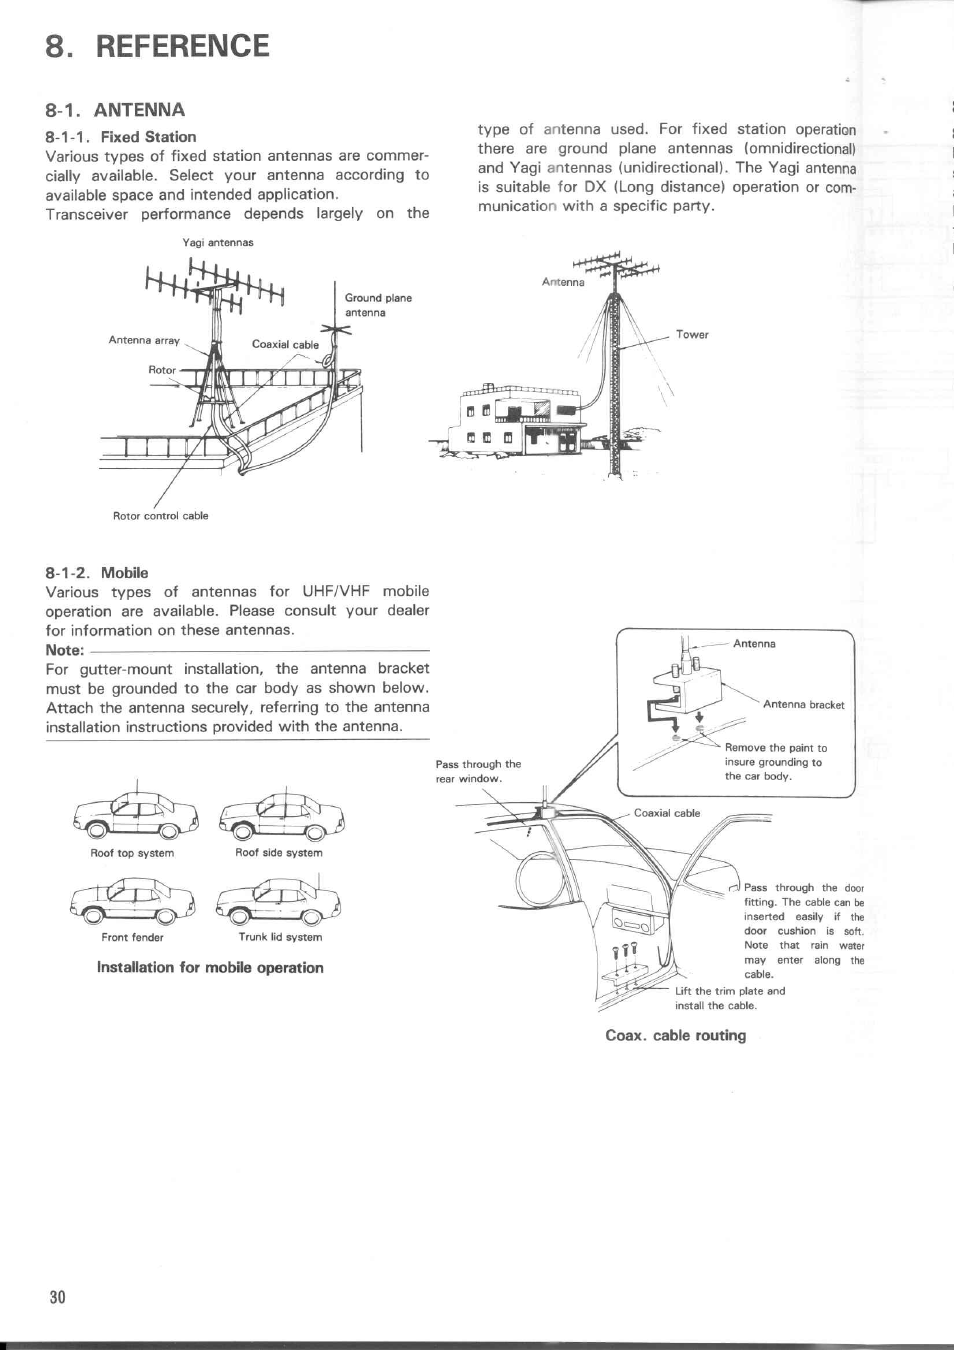 Reference, 1. antenna, 1-1. fixed station | 1-2